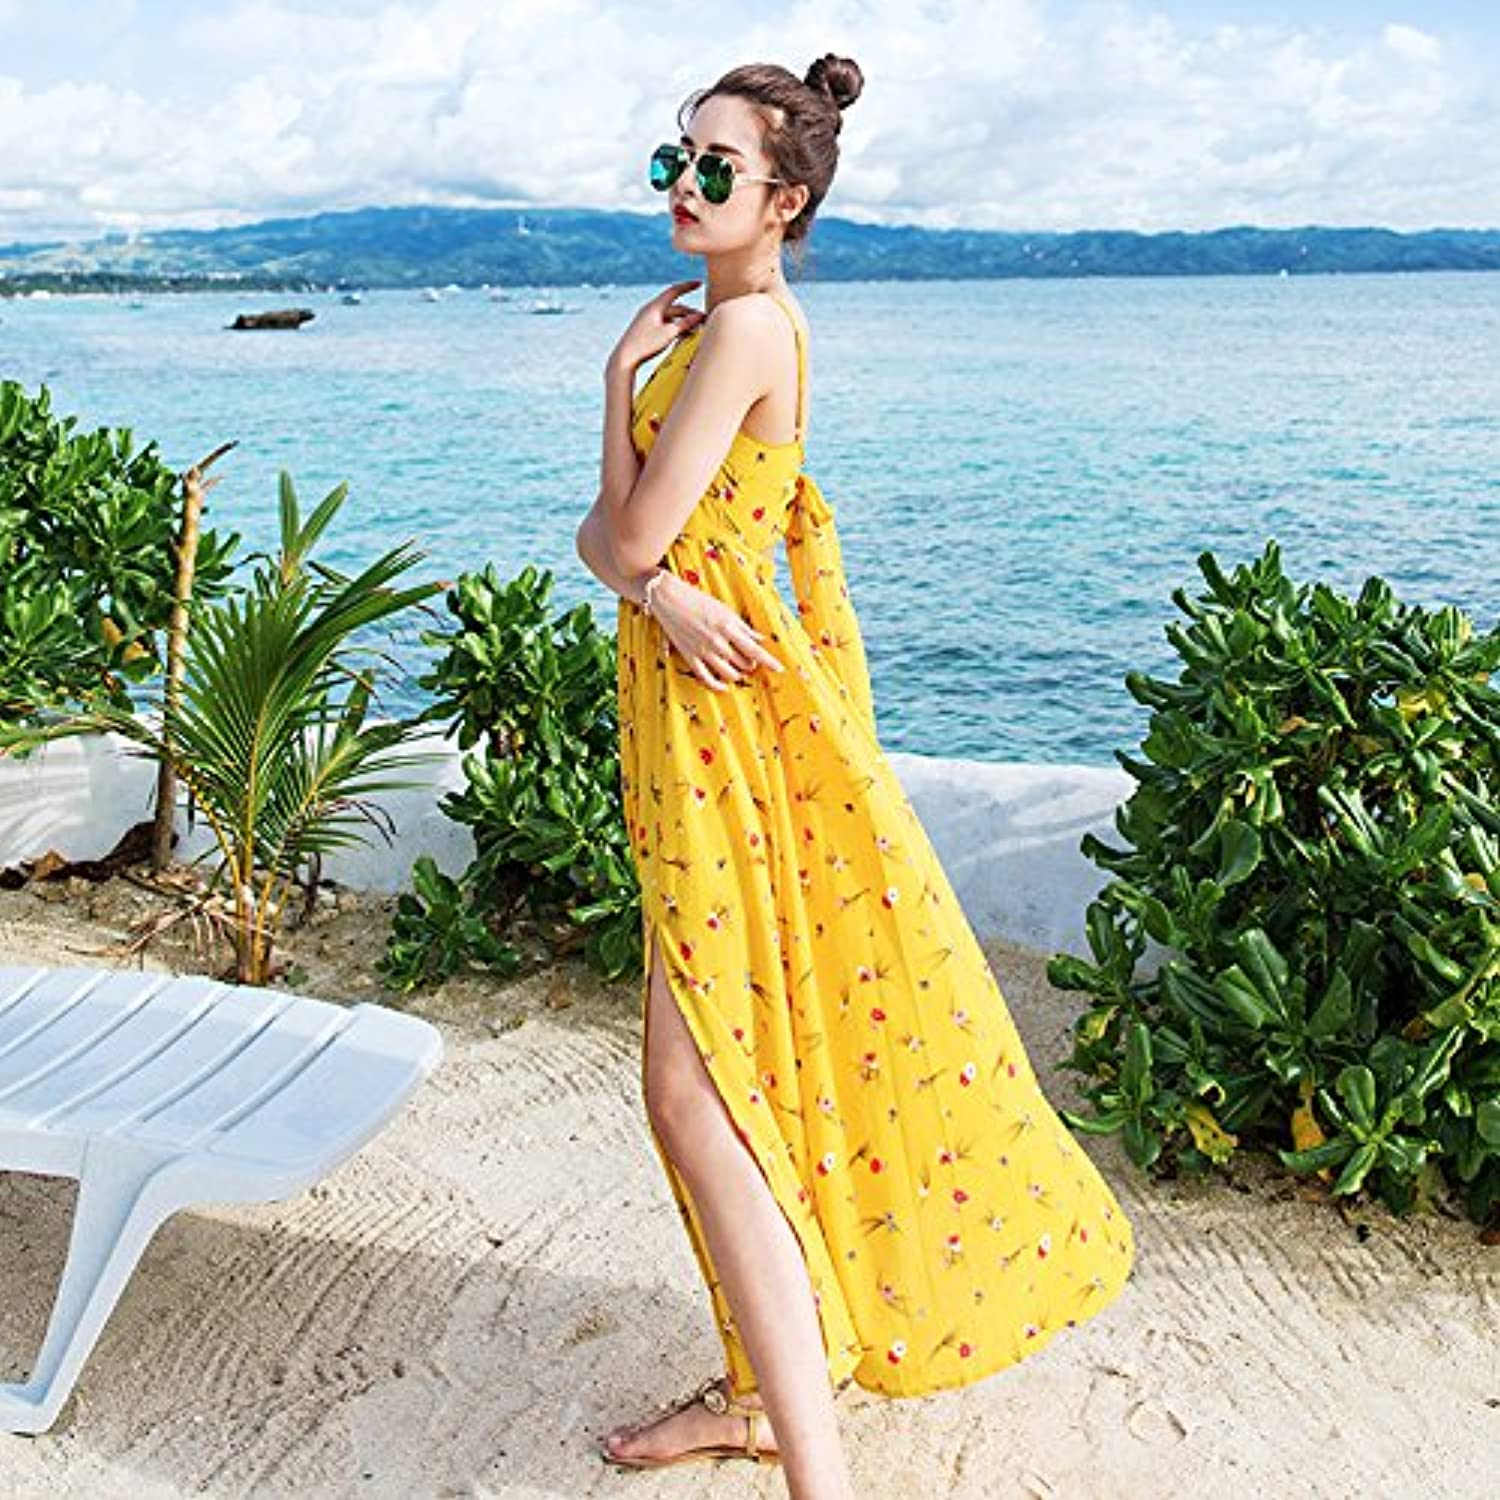 XIURONG Sling Dress Long Skirt Seaside Holiday Beach Skirt